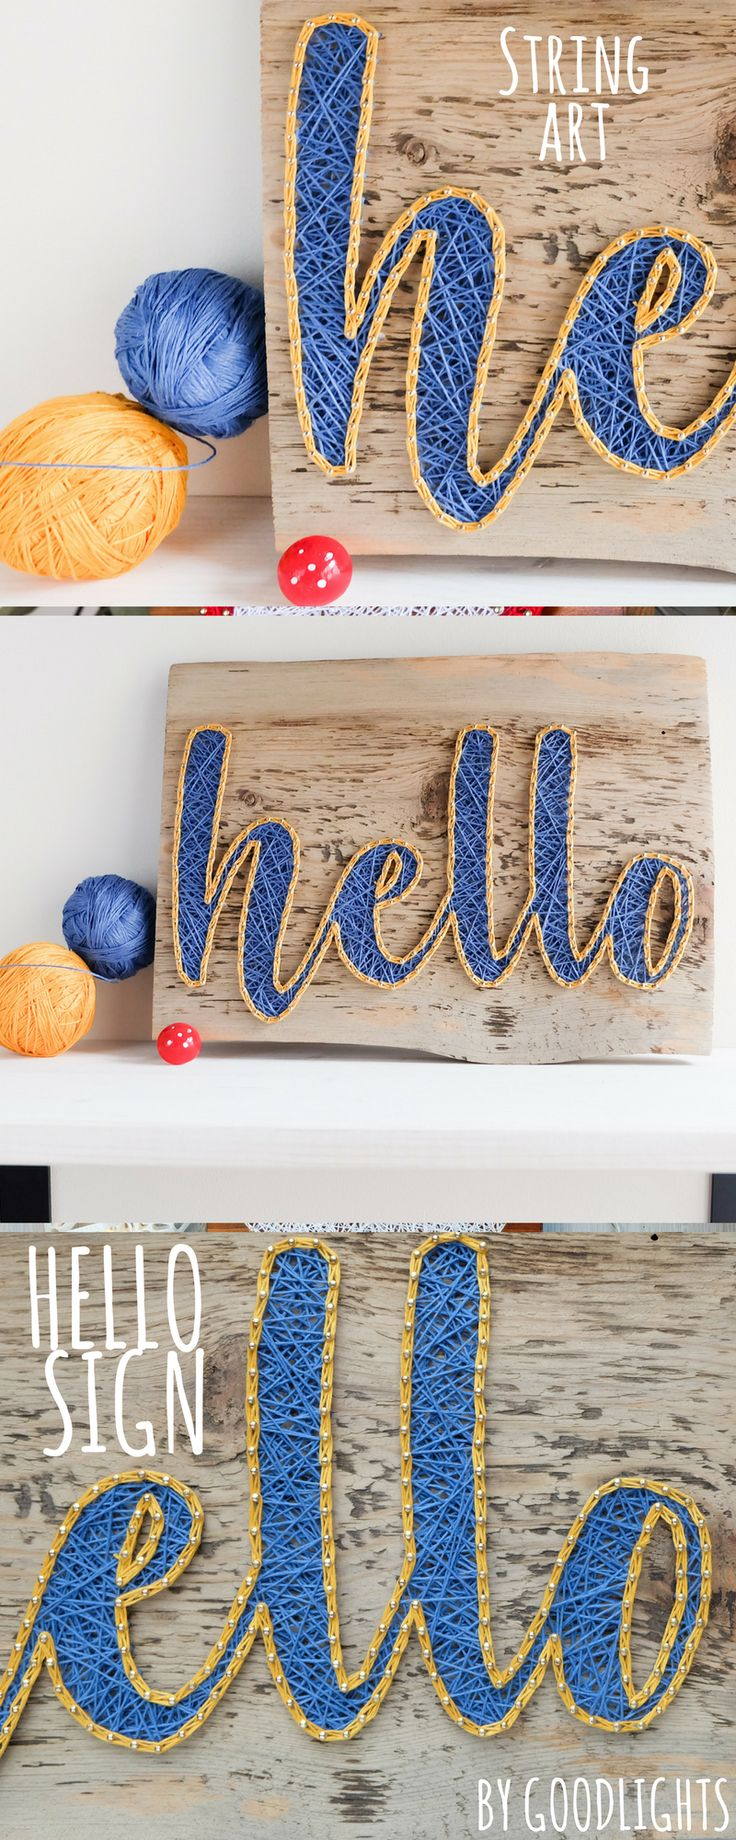 HELLO entryway string art sign in yellow and blue made on reclaimed wood base.